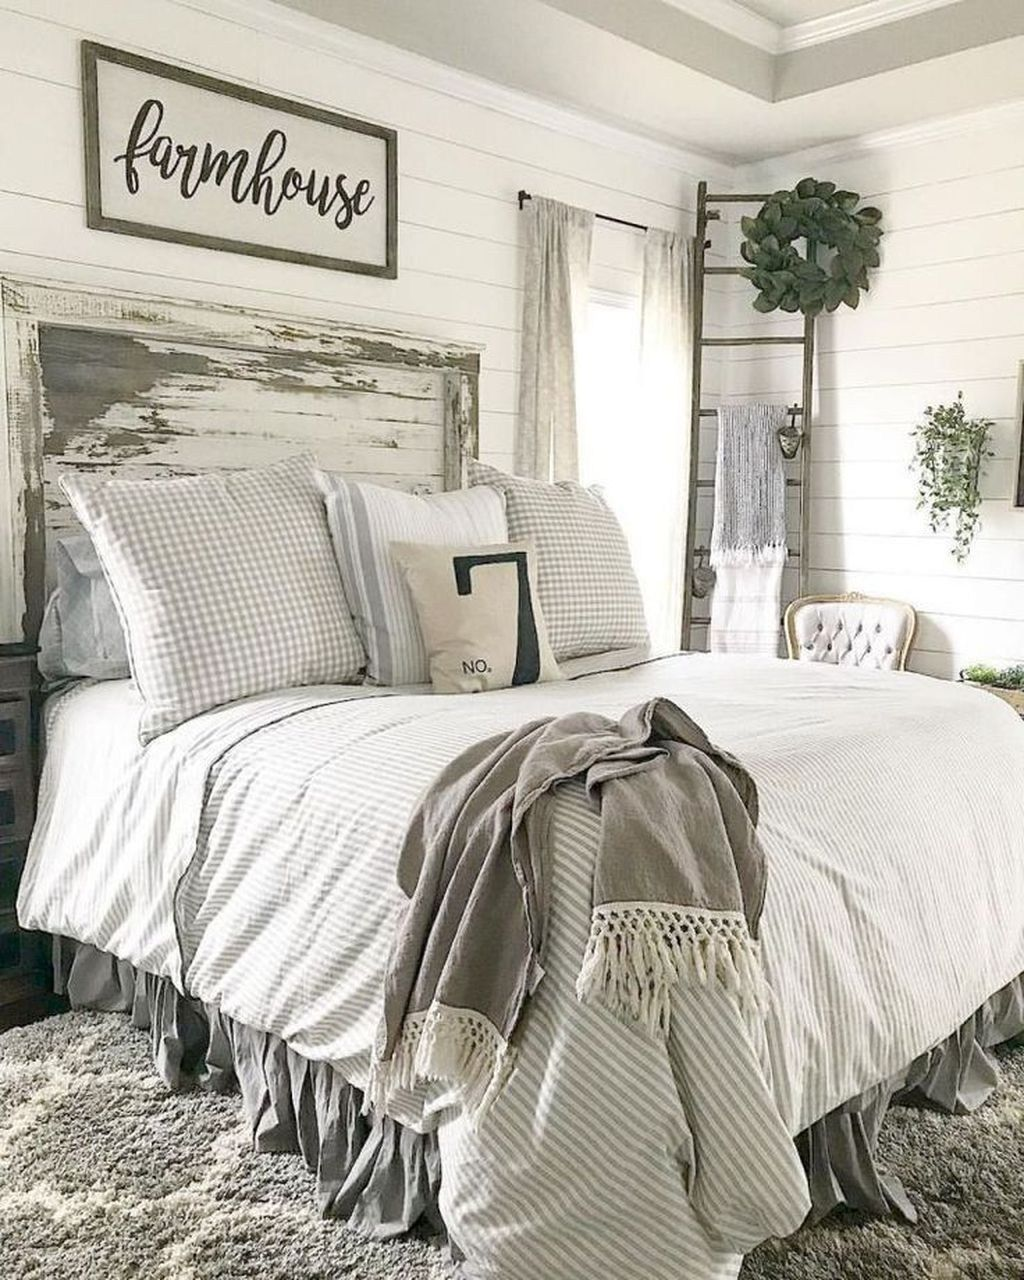 34 Beautiful Farmhouse Bedroom Design Ideas Match For Any Home Design images